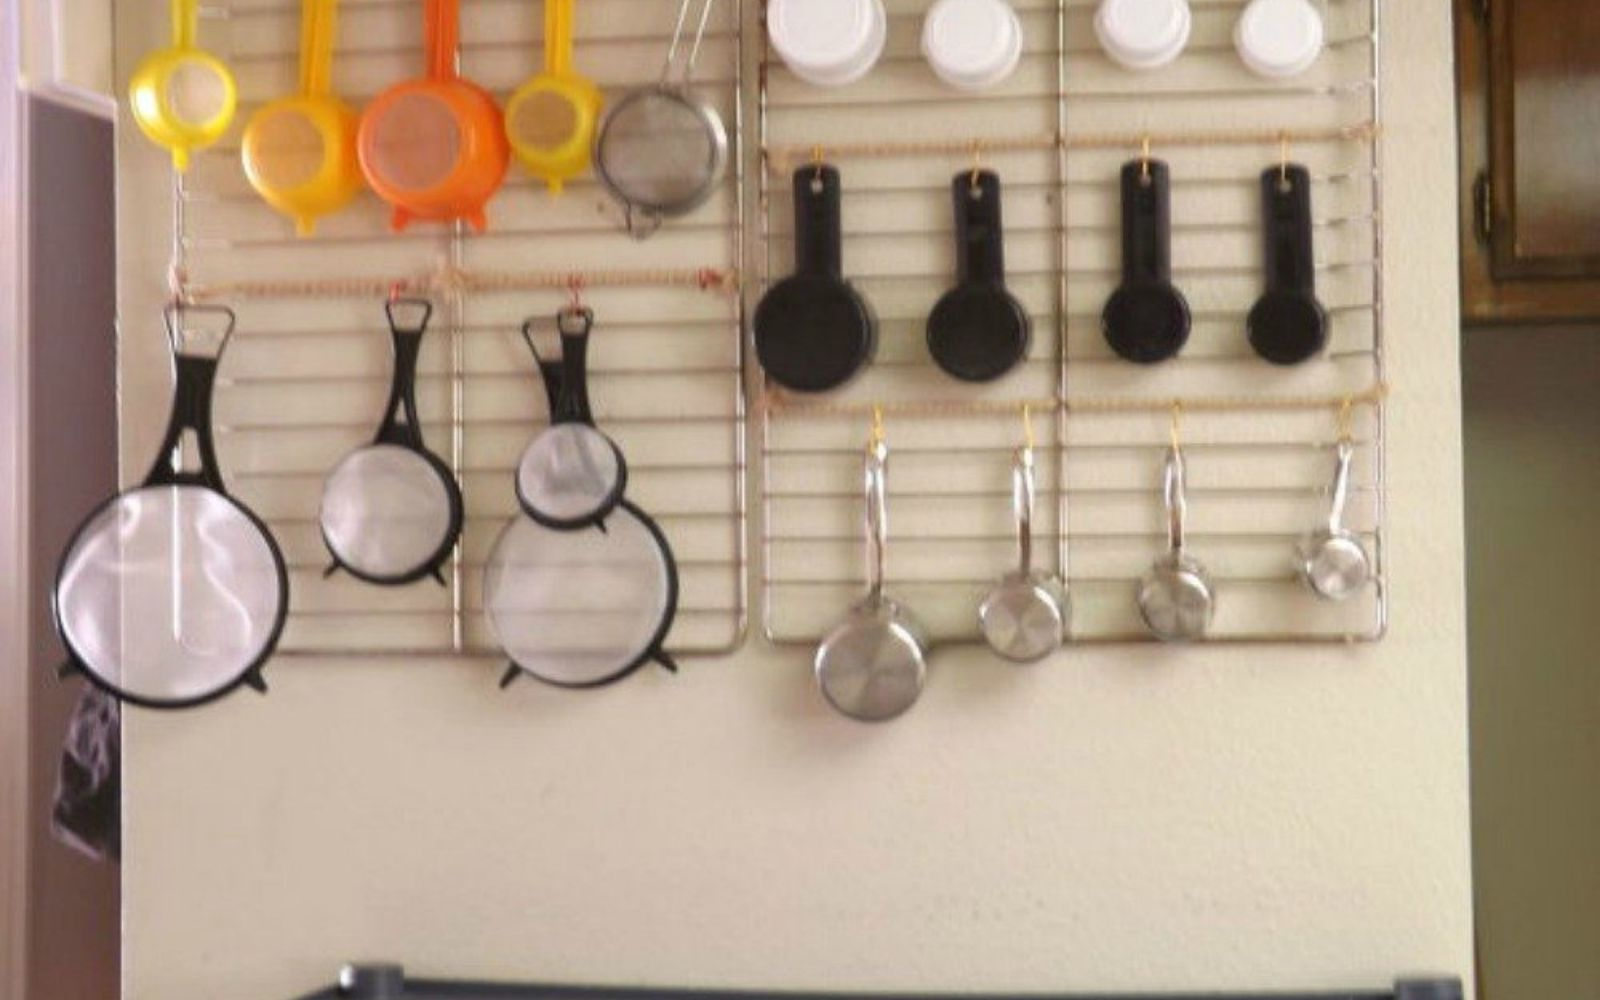 s 13 storage ideas that will instantly declutter your kitchen drawers, kitchen design, organizing, storage ideas, Or hang them on oven racks on your wall